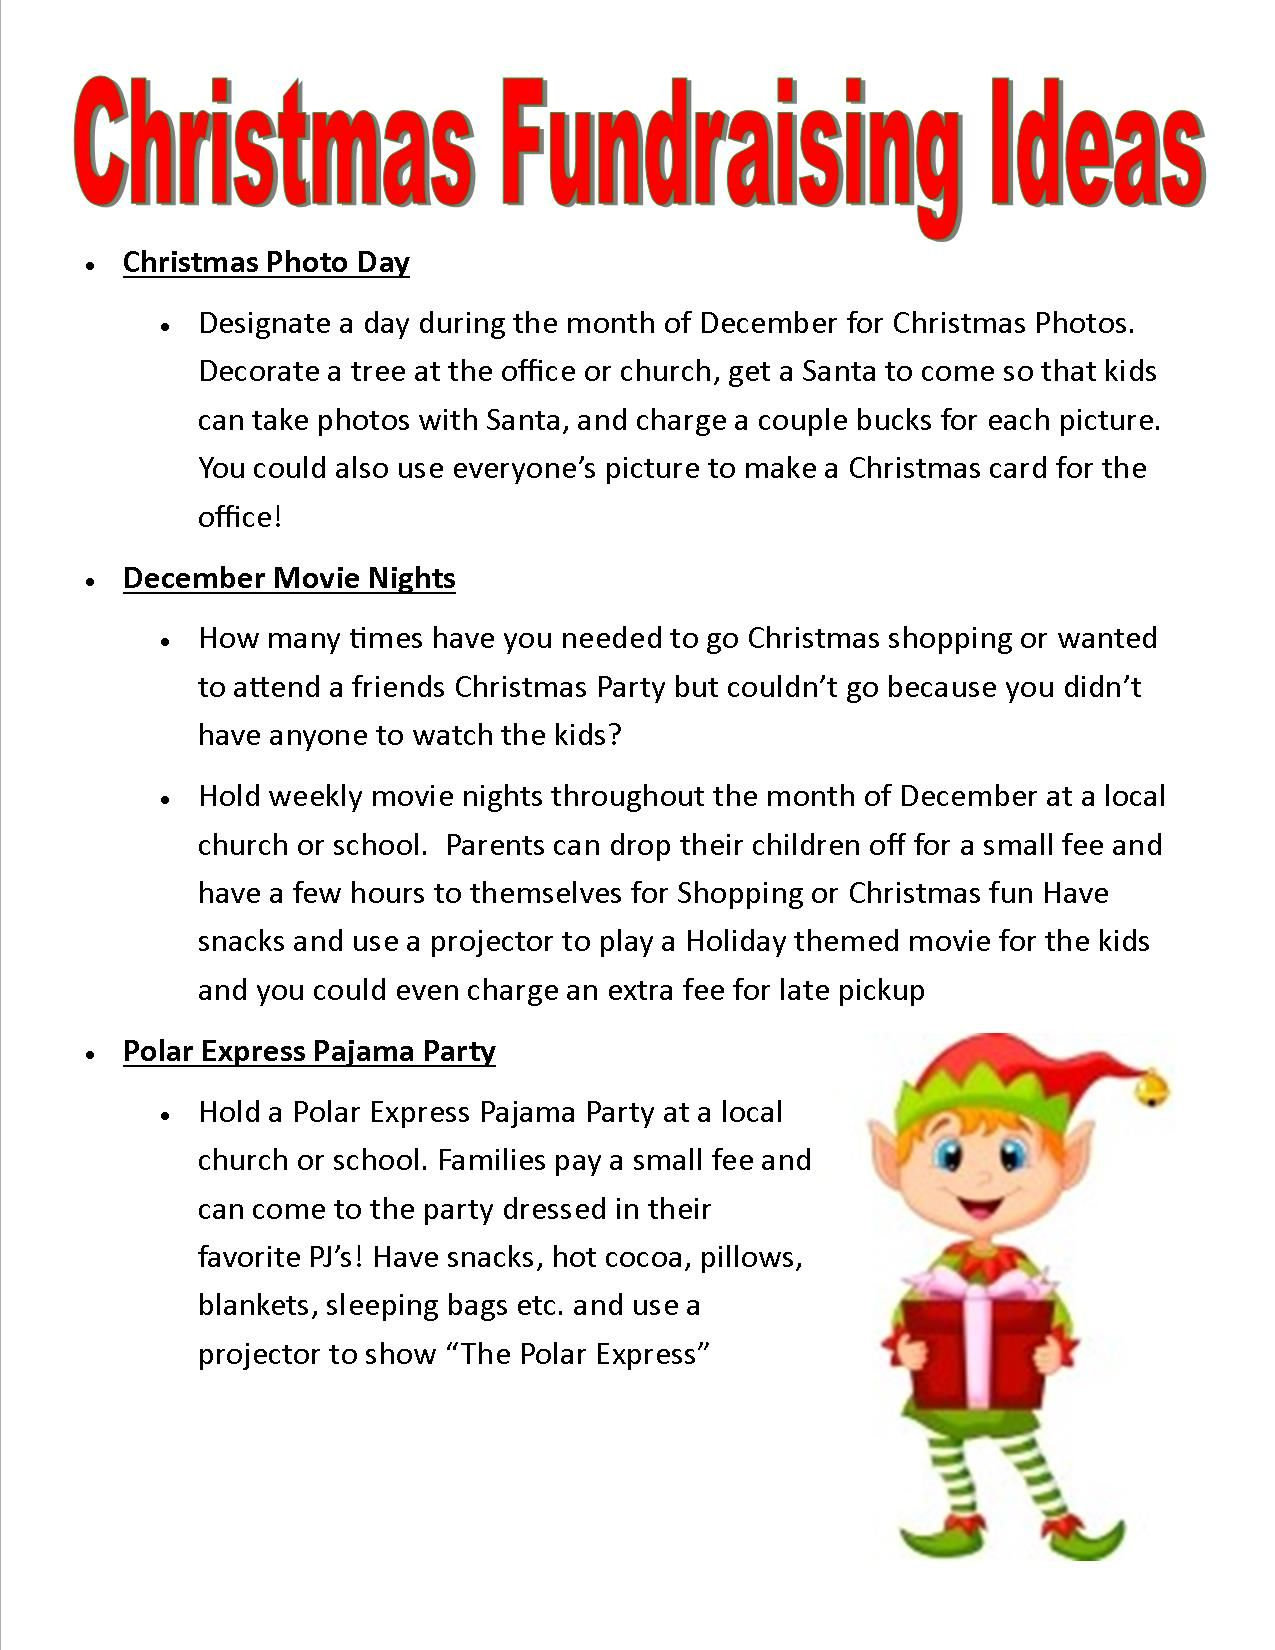 Relay For Life Christmas Fundraising ideas | Relay for Life ...